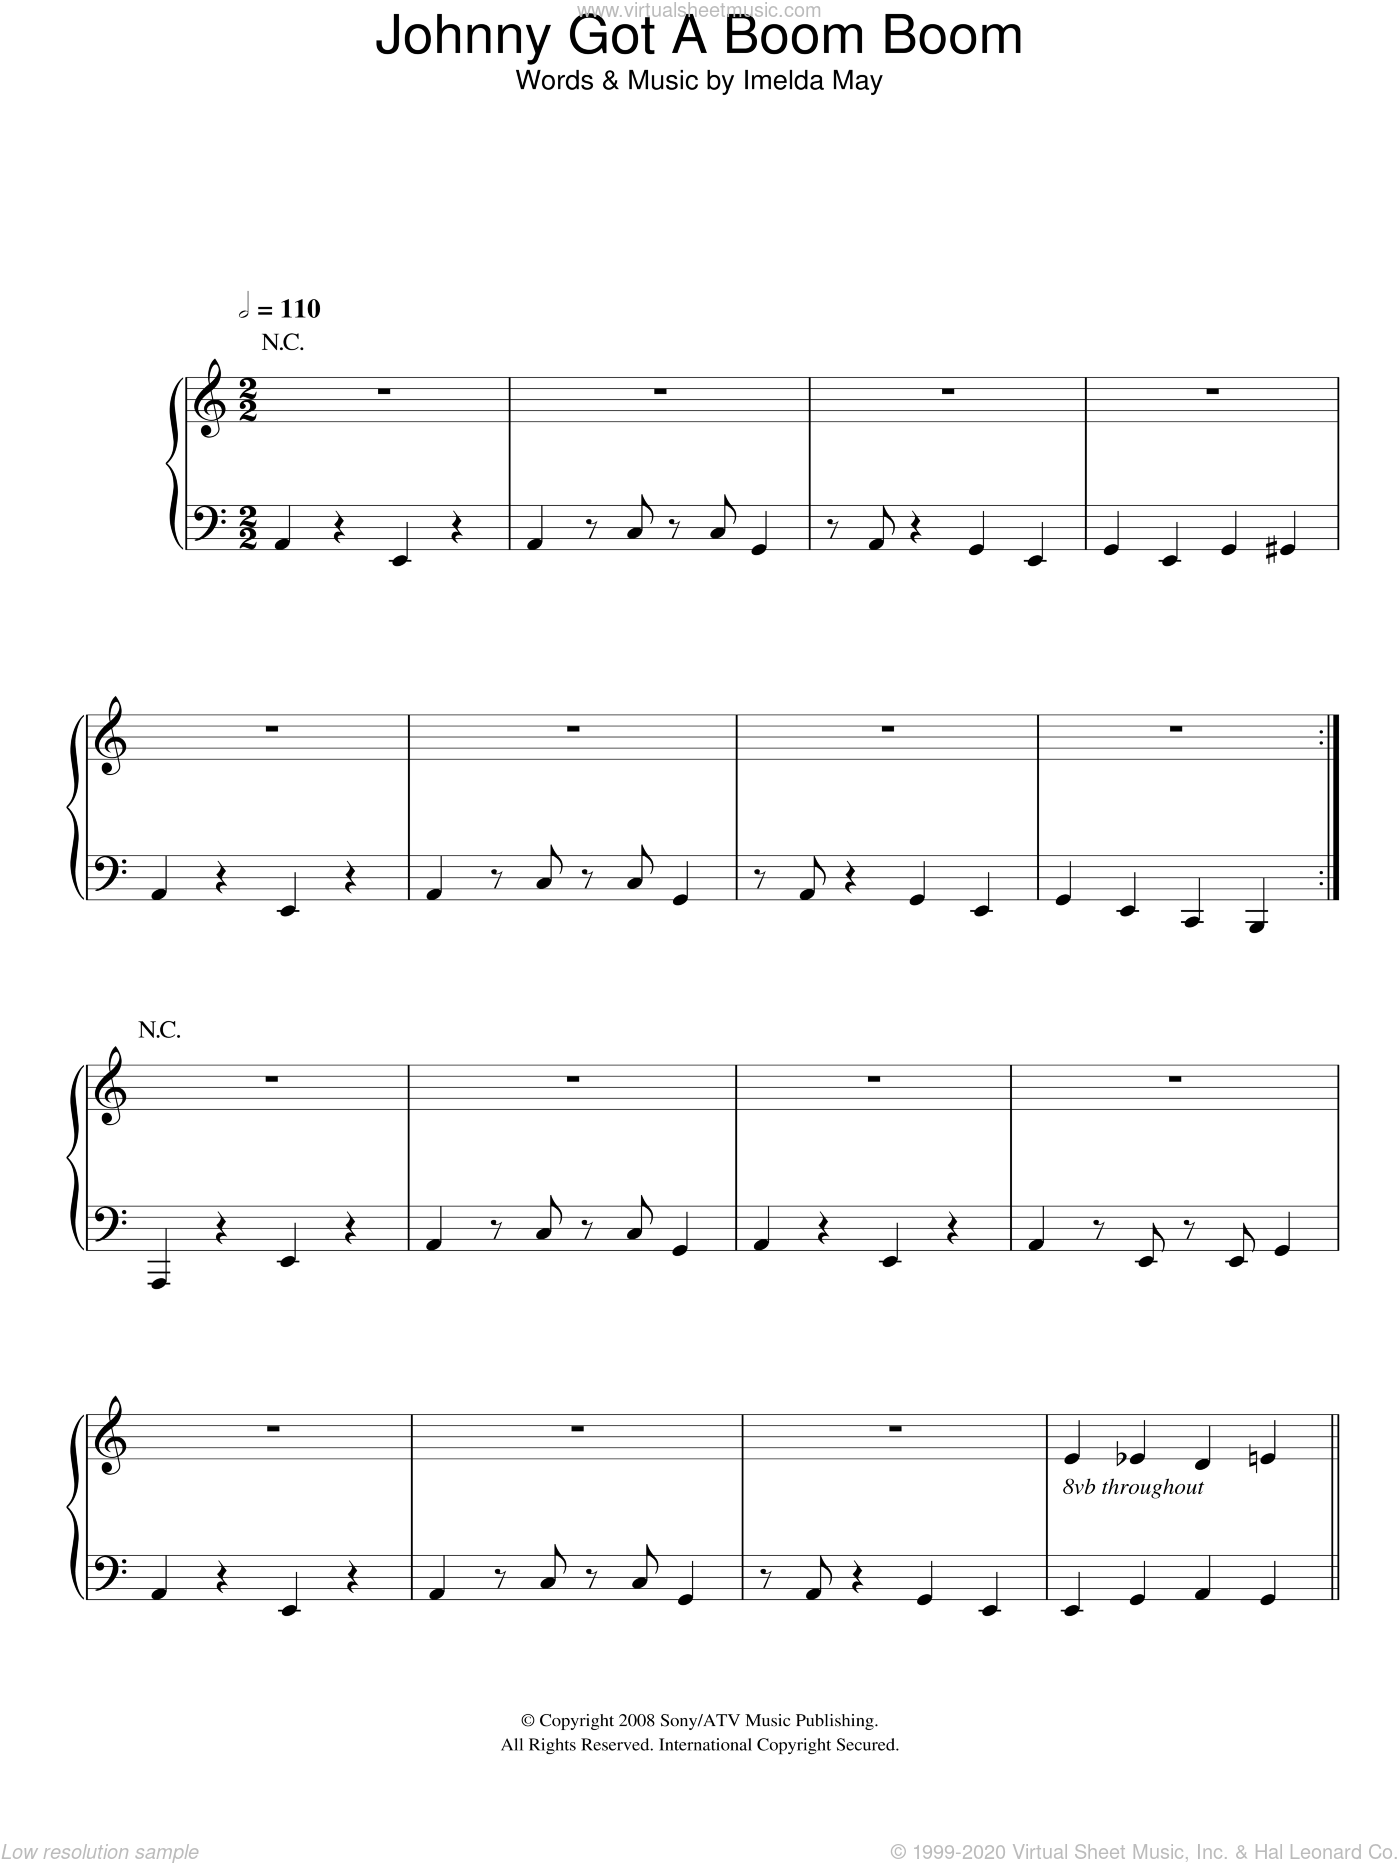 Johnny Got A Boom Boom sheet music for voice, piano or guitar by Imelda May. Score Image Preview.